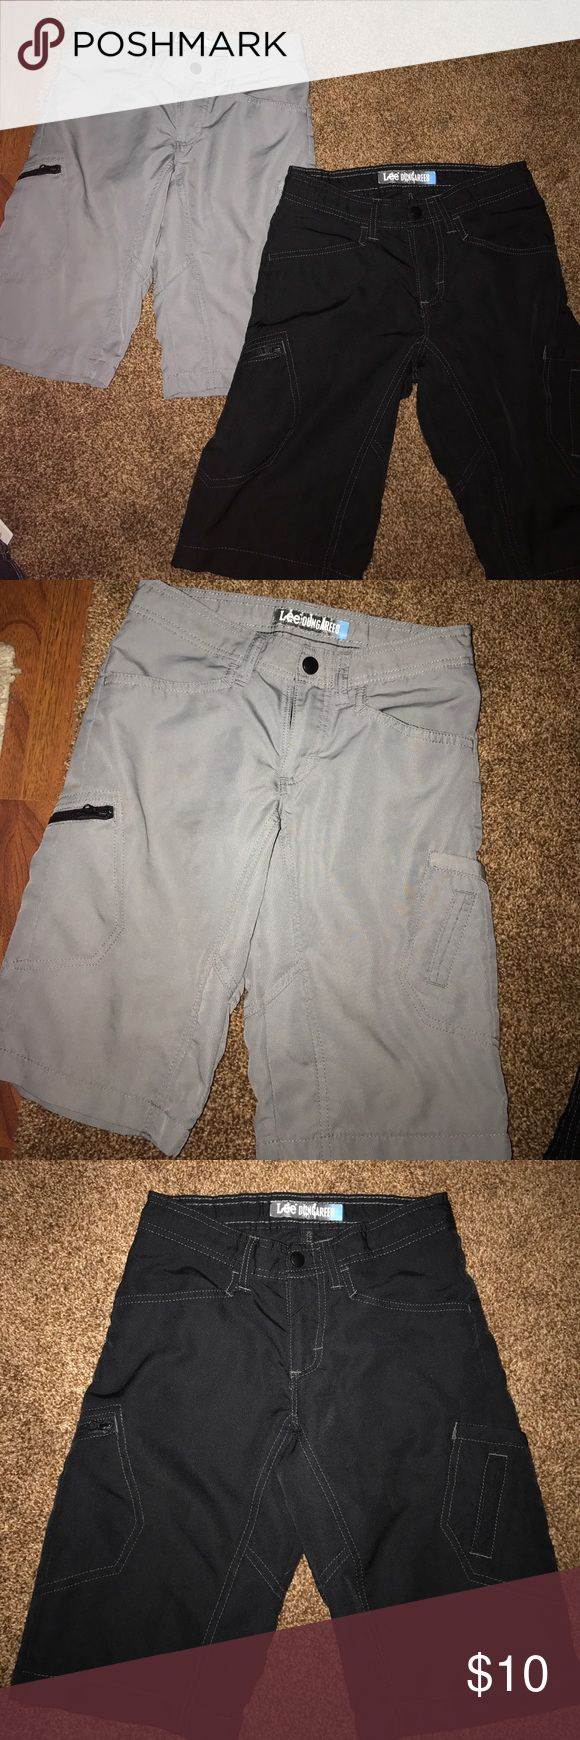 Lee dungarees shorts. Two pair of shorts. One pair is gray and other is black. Great condition. Size 10 in boys. lee dungarees Bottoms Shorts